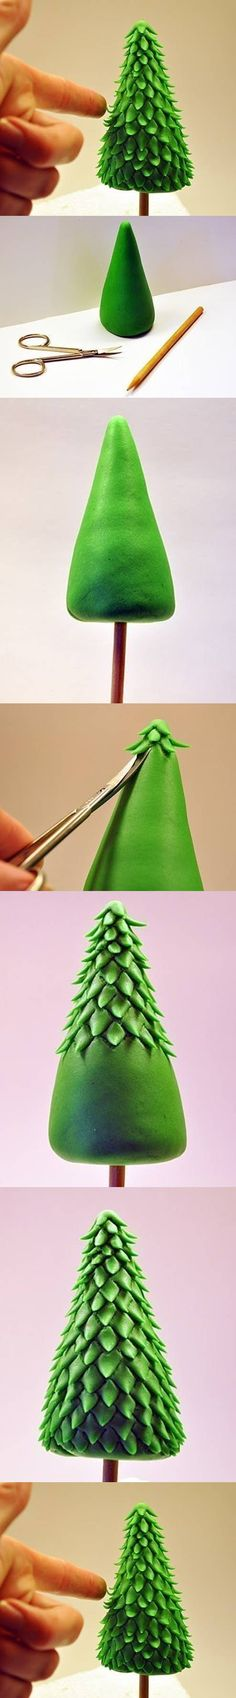 DIY Clay Christmas Tree Photo Tutorial